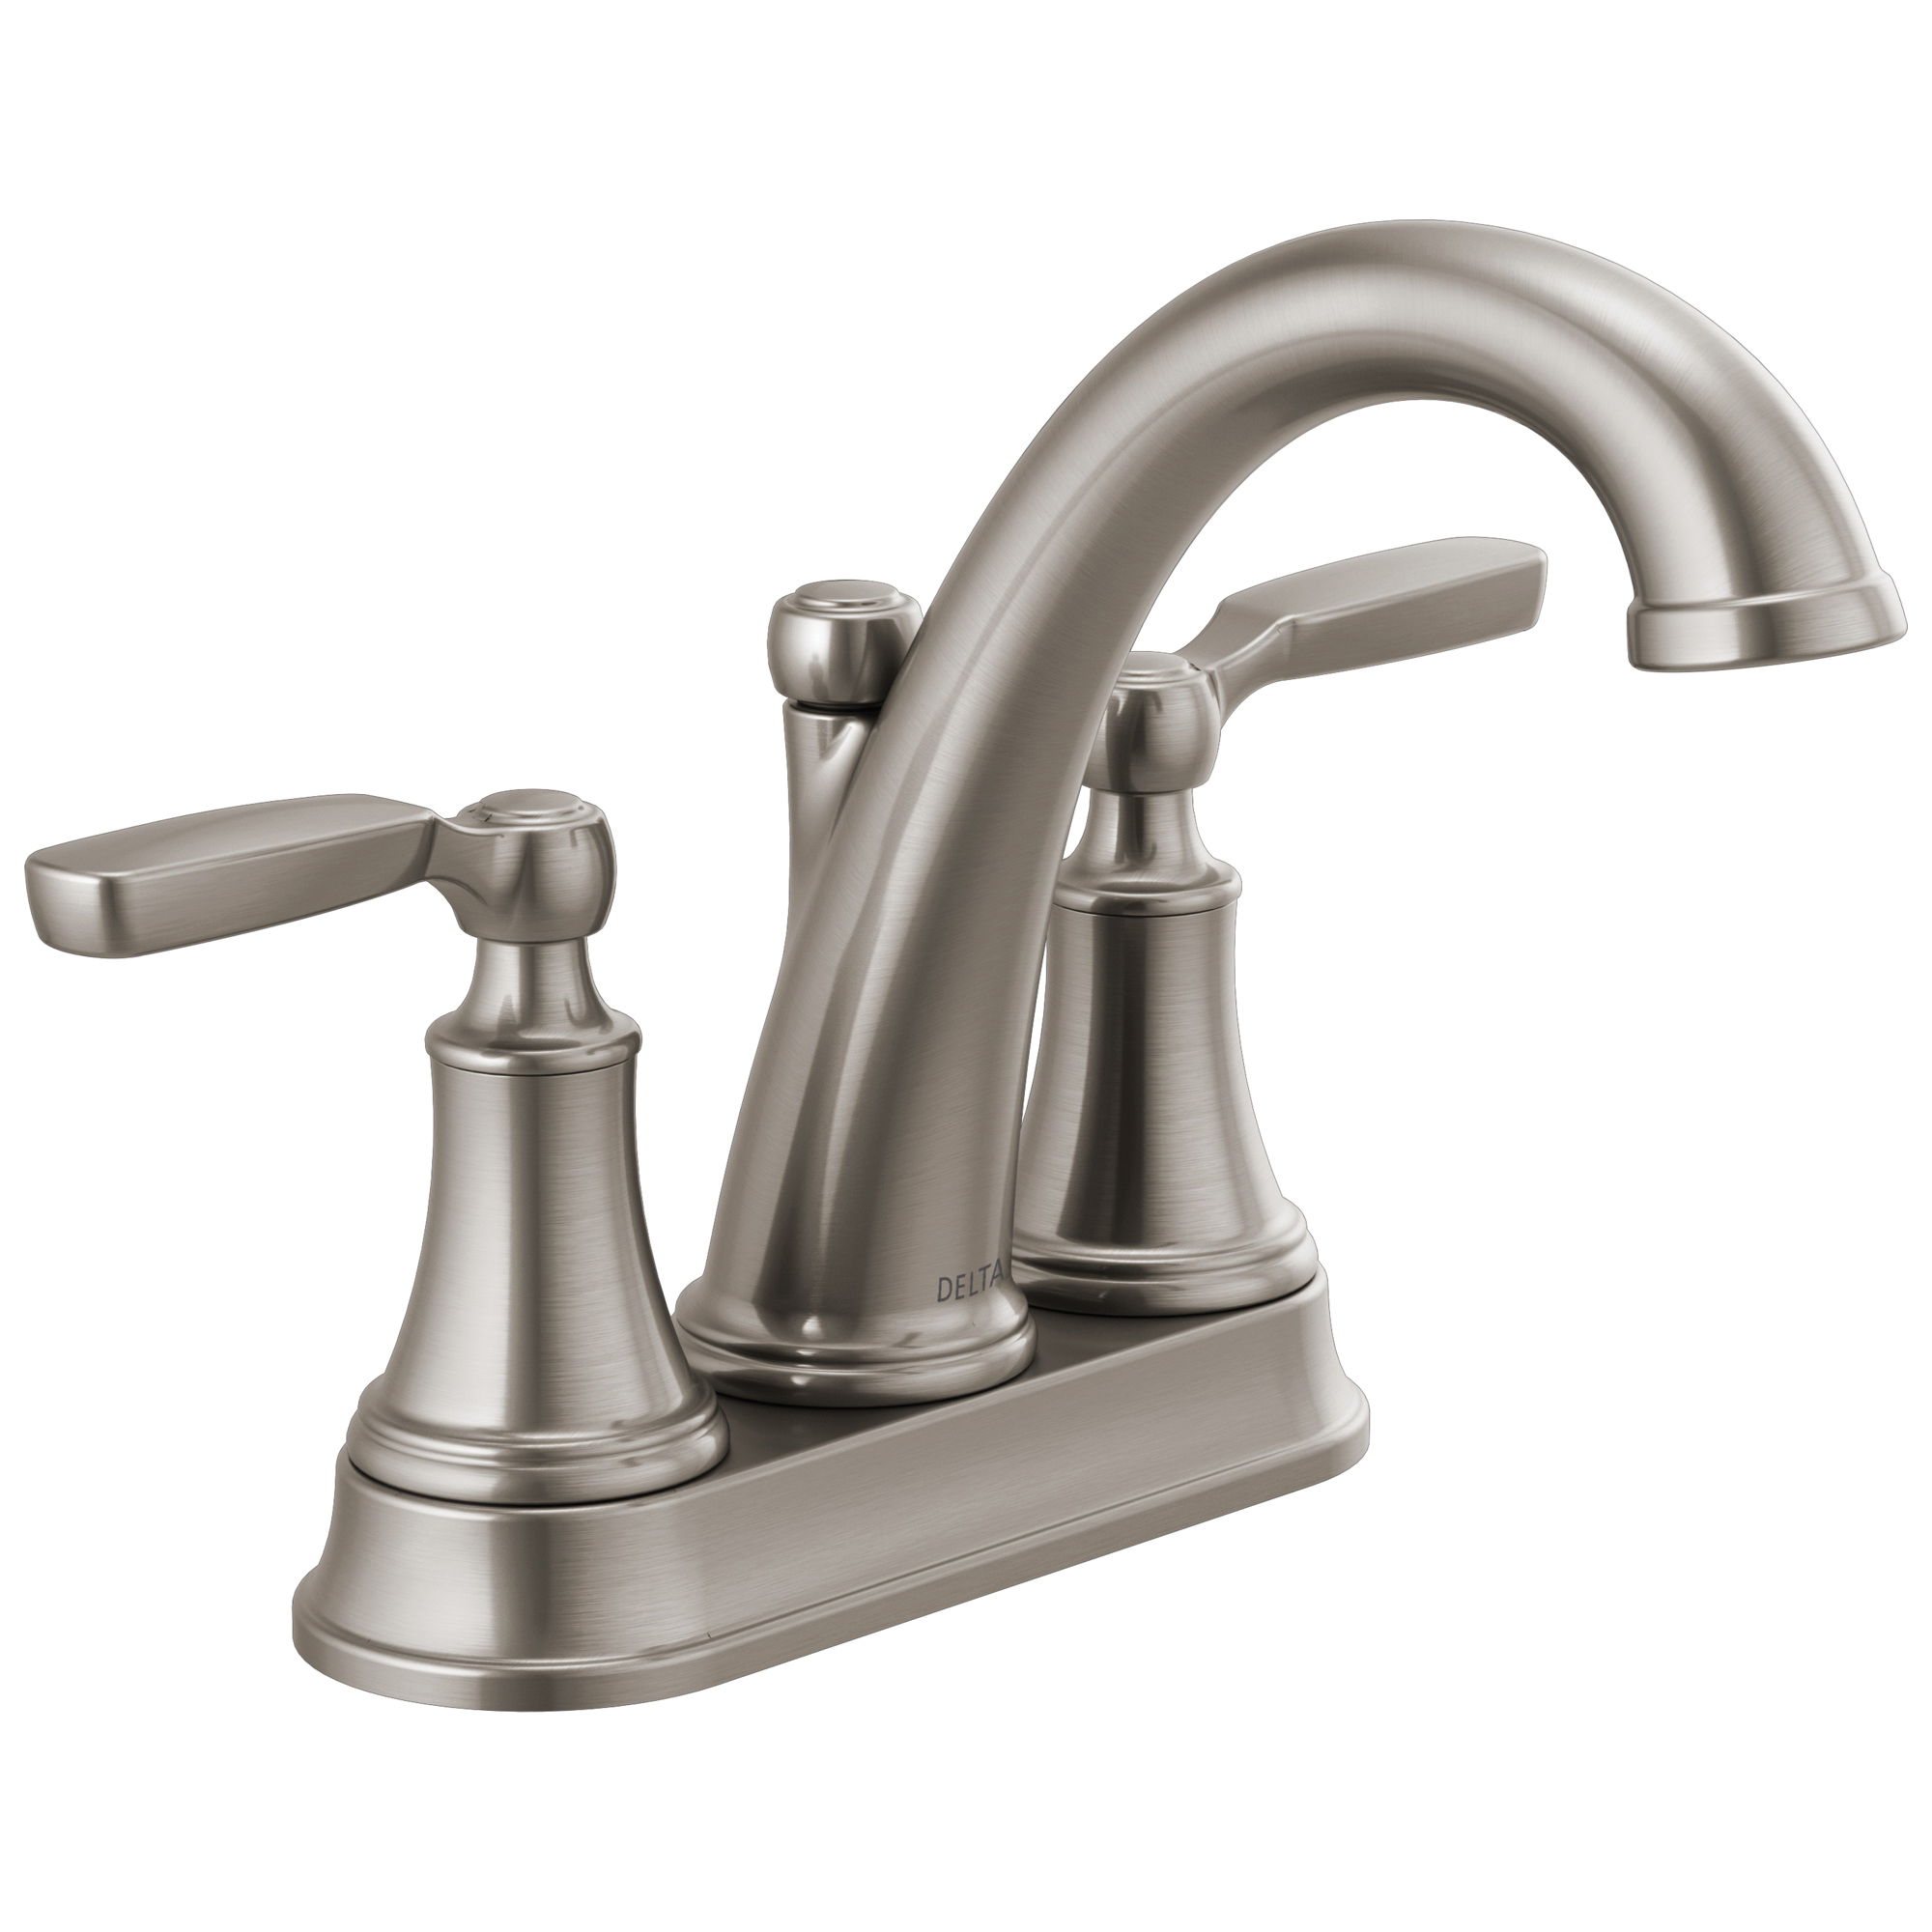 DELTA® 2532LF-SSMPU Bathroom Faucet, Woodhurst™, Stainless, 2 Handles, Metal Pop-Up Drain, 1.2 gpm